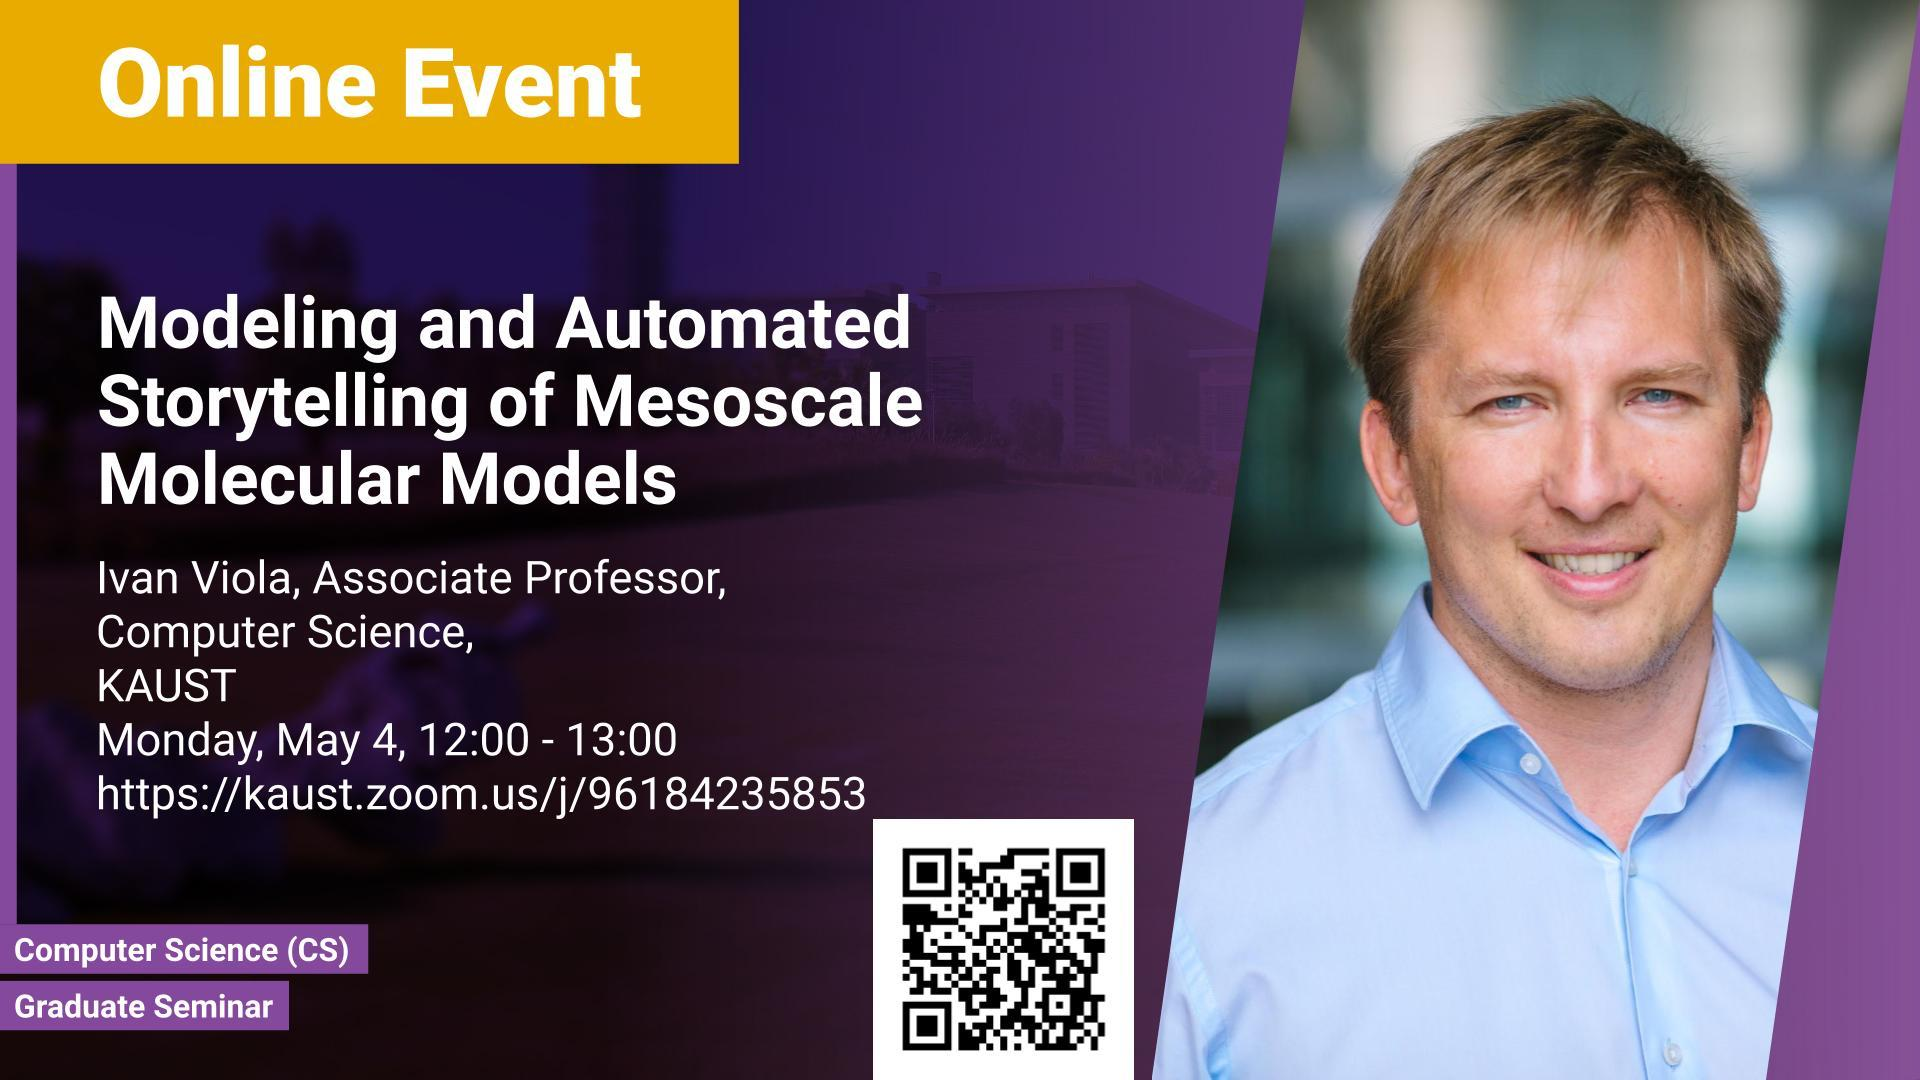 KAUST CEMSE CS Graduate Seminar Ivan Viola Modeling and Automated Storytelling of Mesoscale Molecular Models